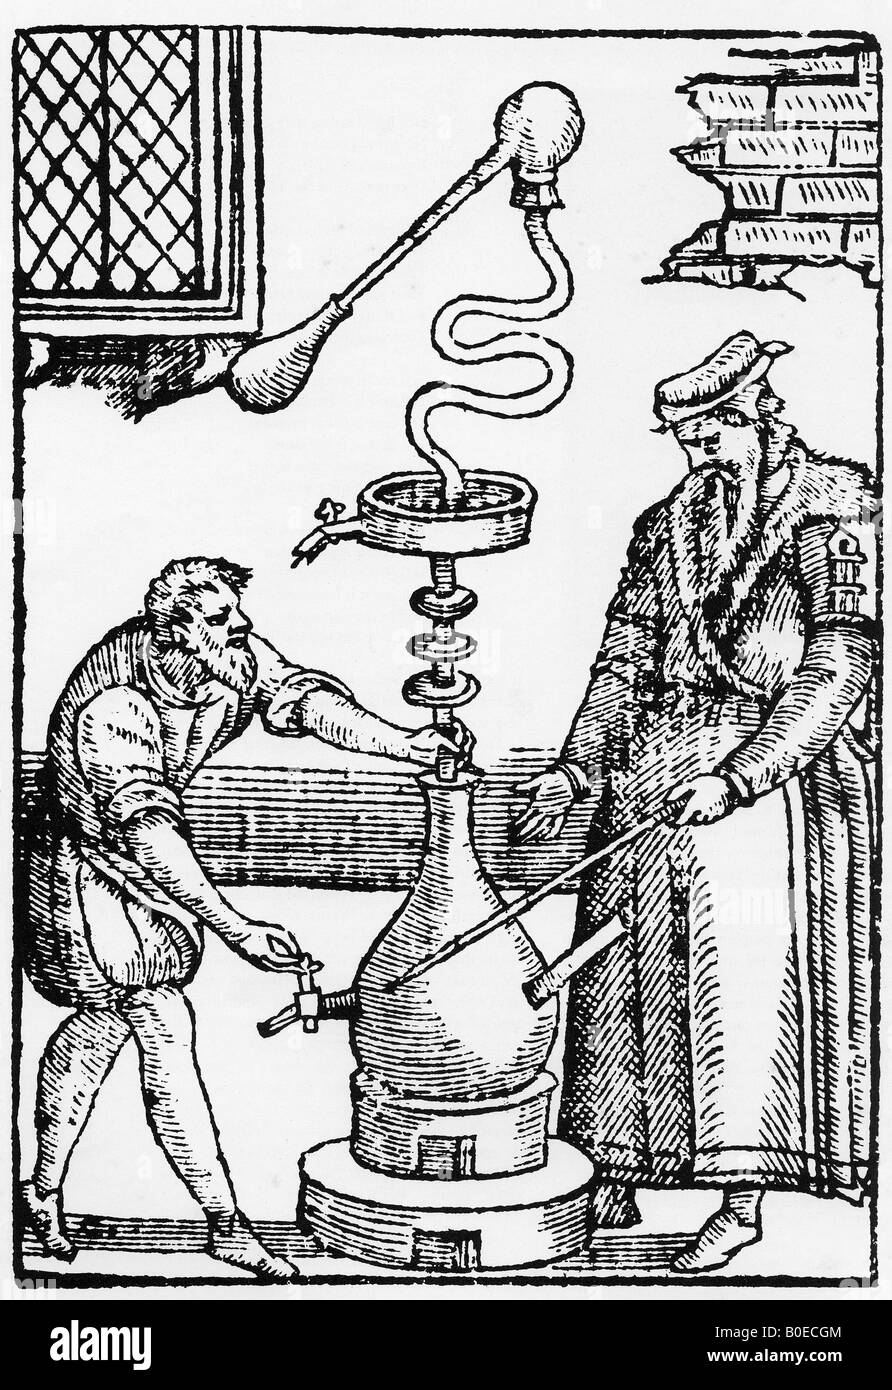 ALCHEMY  Elizabethan engraving showing two Alchemists trying to distil the imagined Elixir of Life - Stock Image